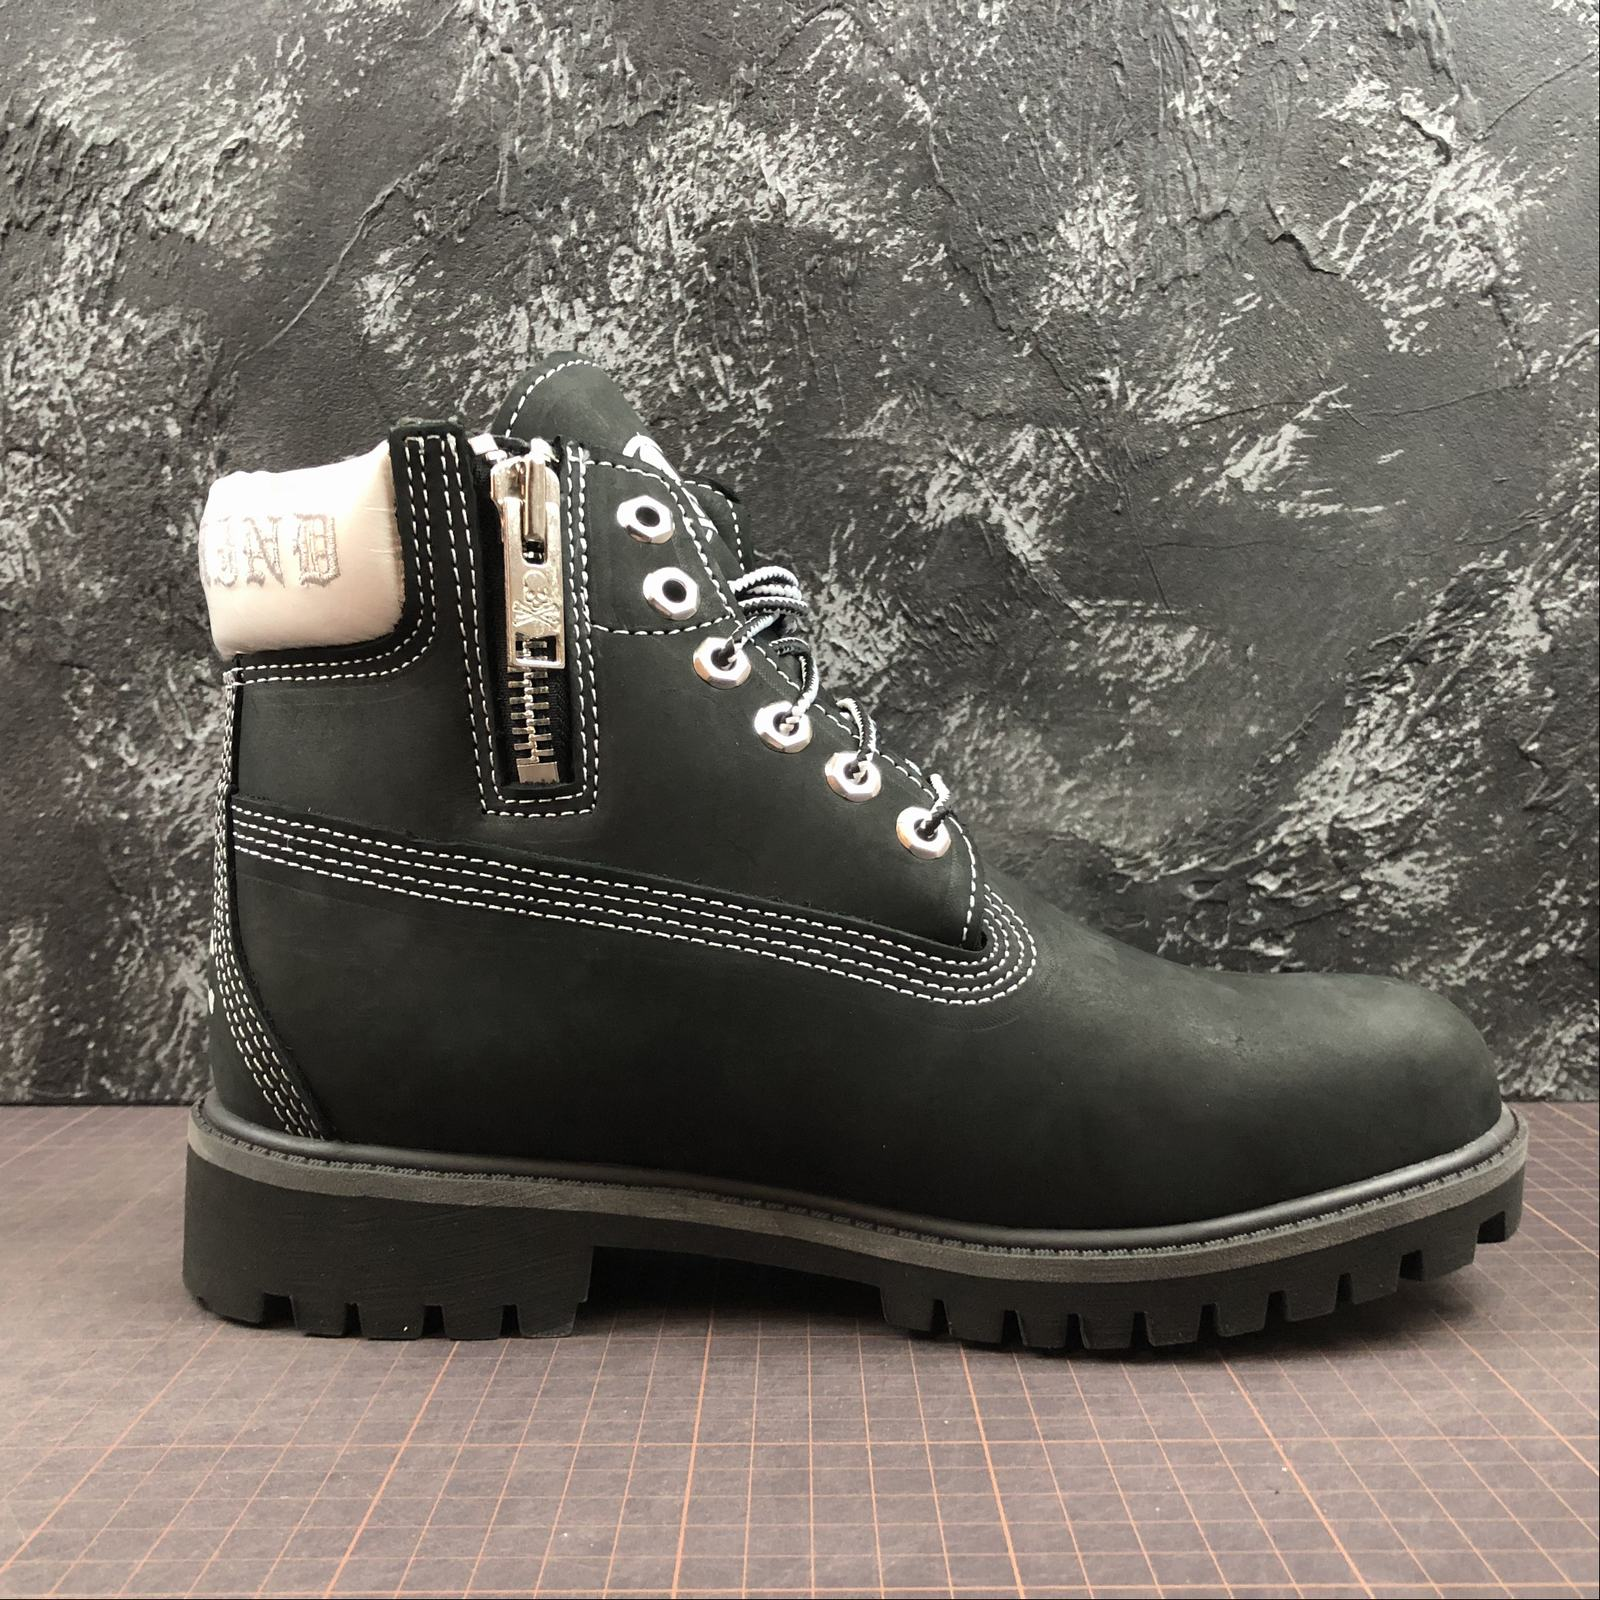 Зимние мужские ботинки Timberland x Mastermind Japan 5-Inch Zip Waterproof Boots Black - фото №2